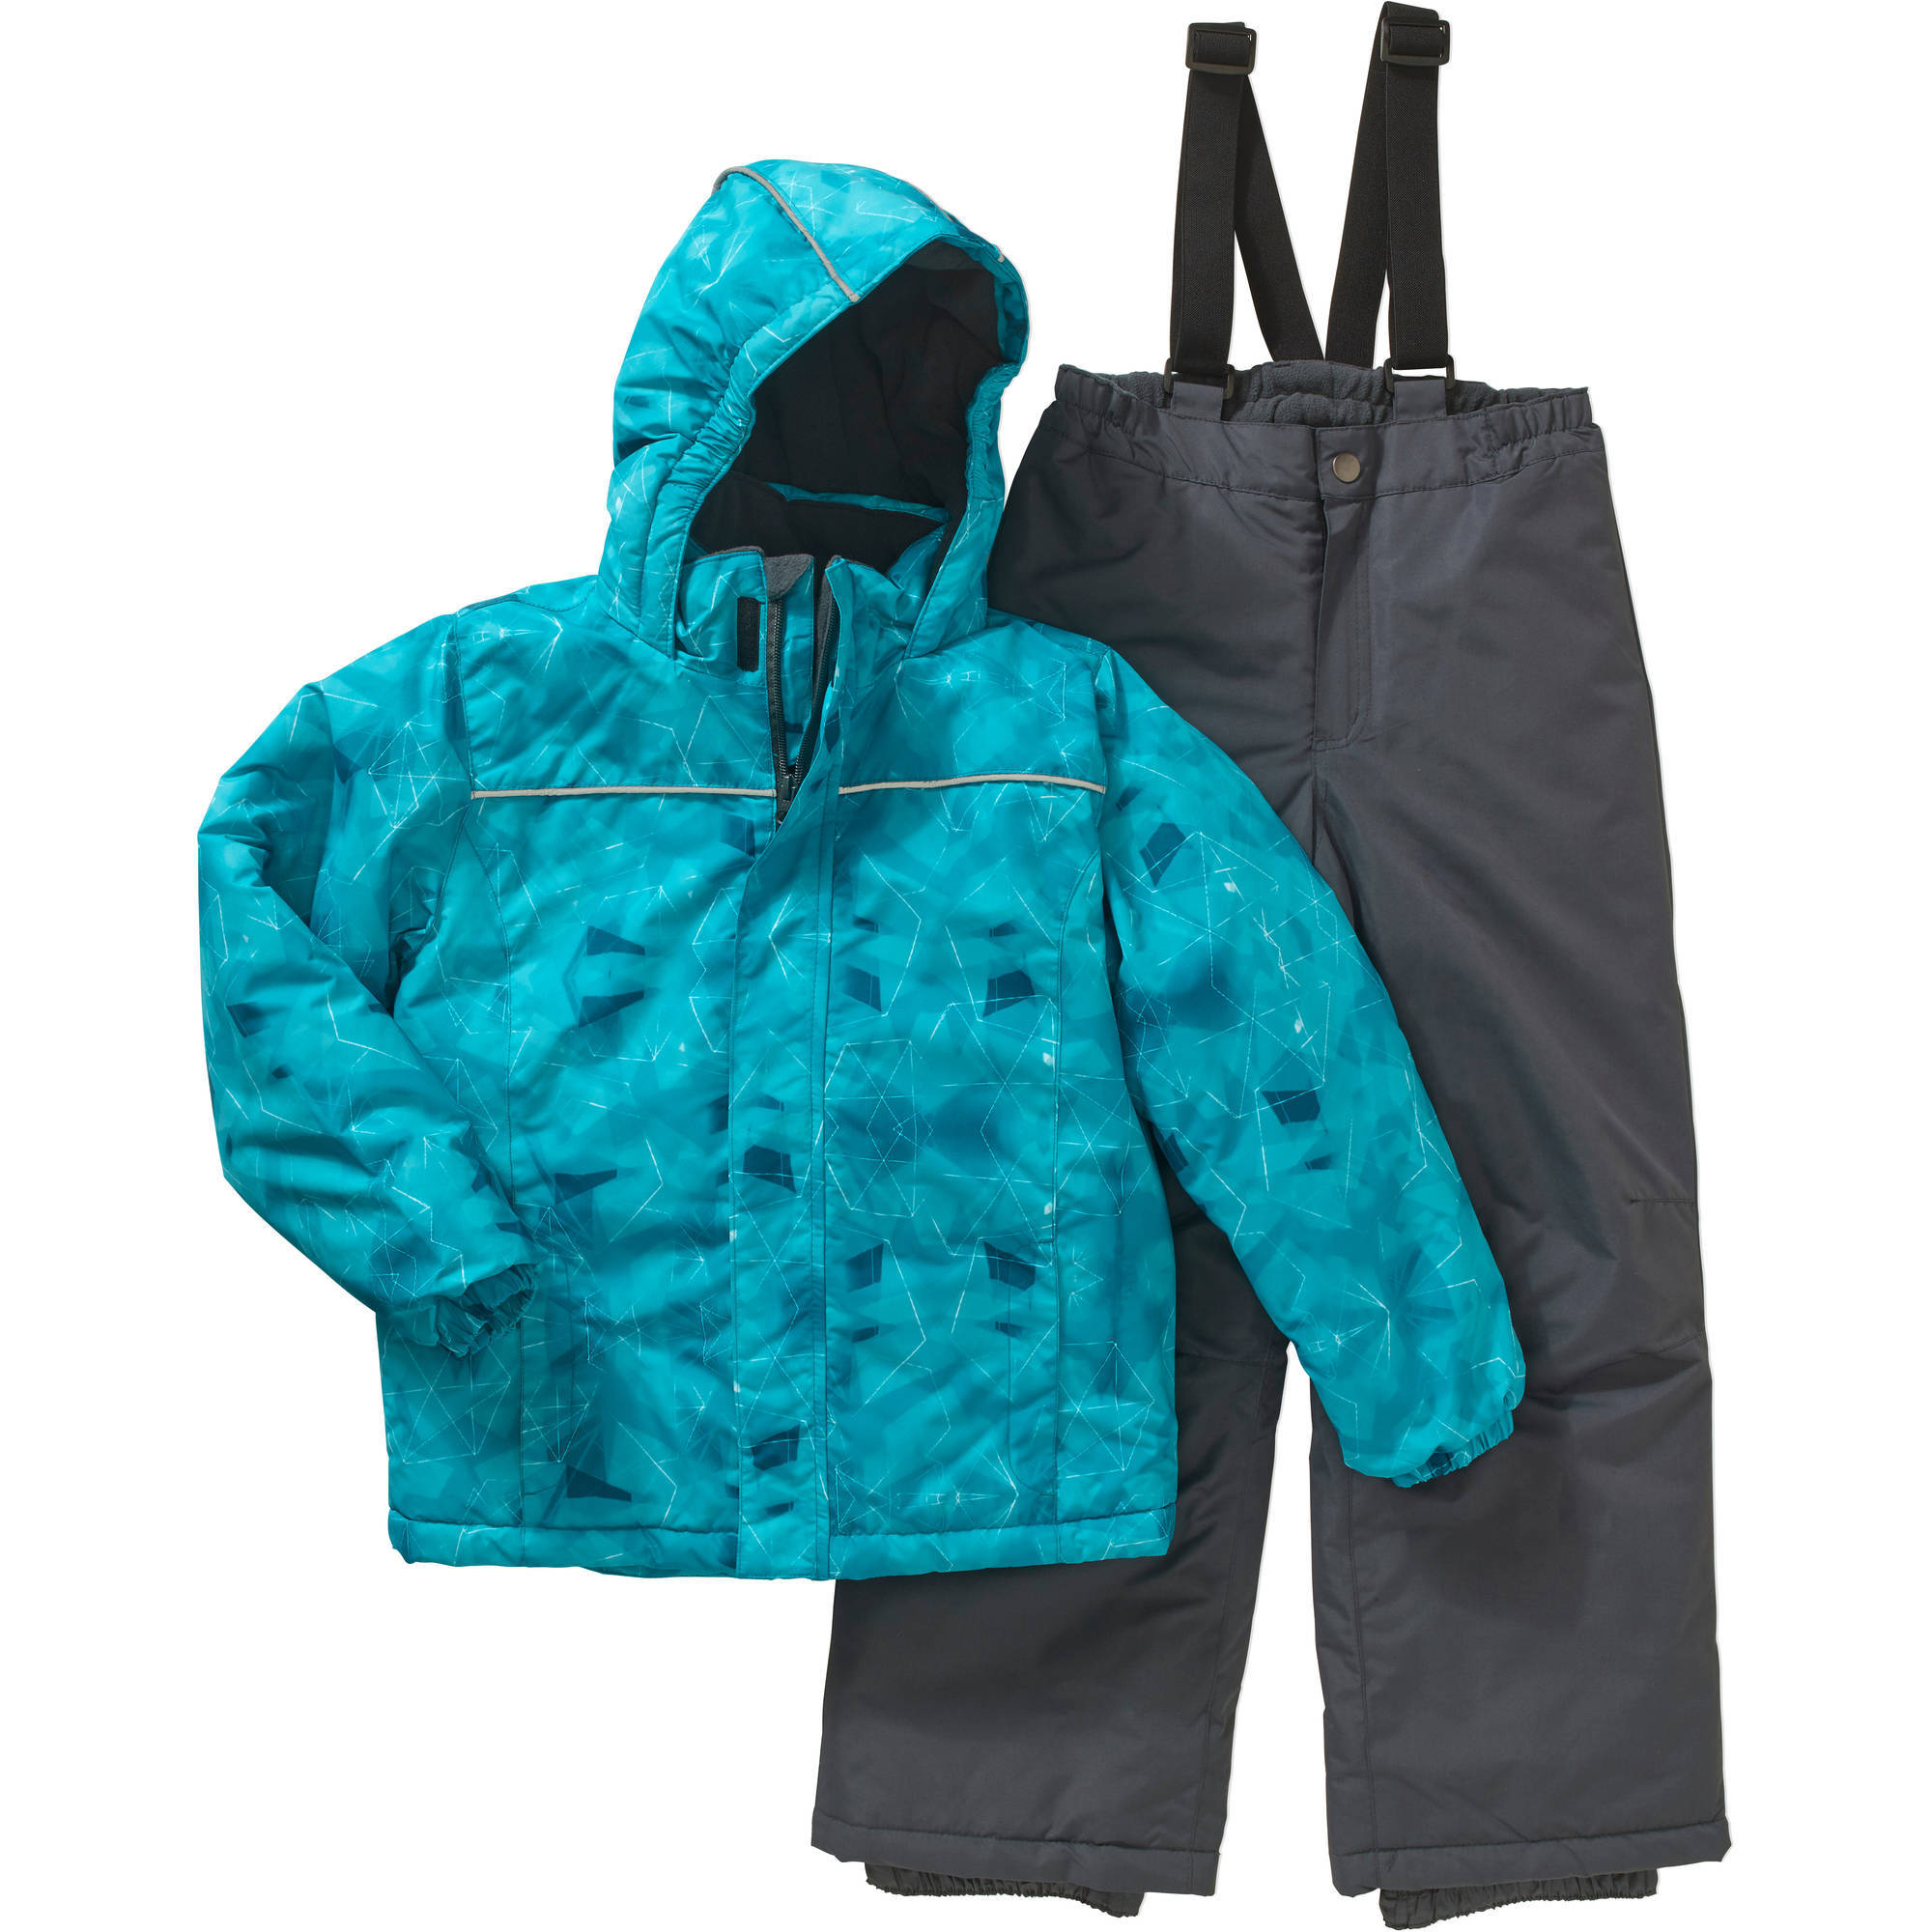 Iceburg Boys' Performance Insulated 2 Piece Snowsuit Jacket and Ski Bib Pants Set, Available in 5 Prints and 10 Colors